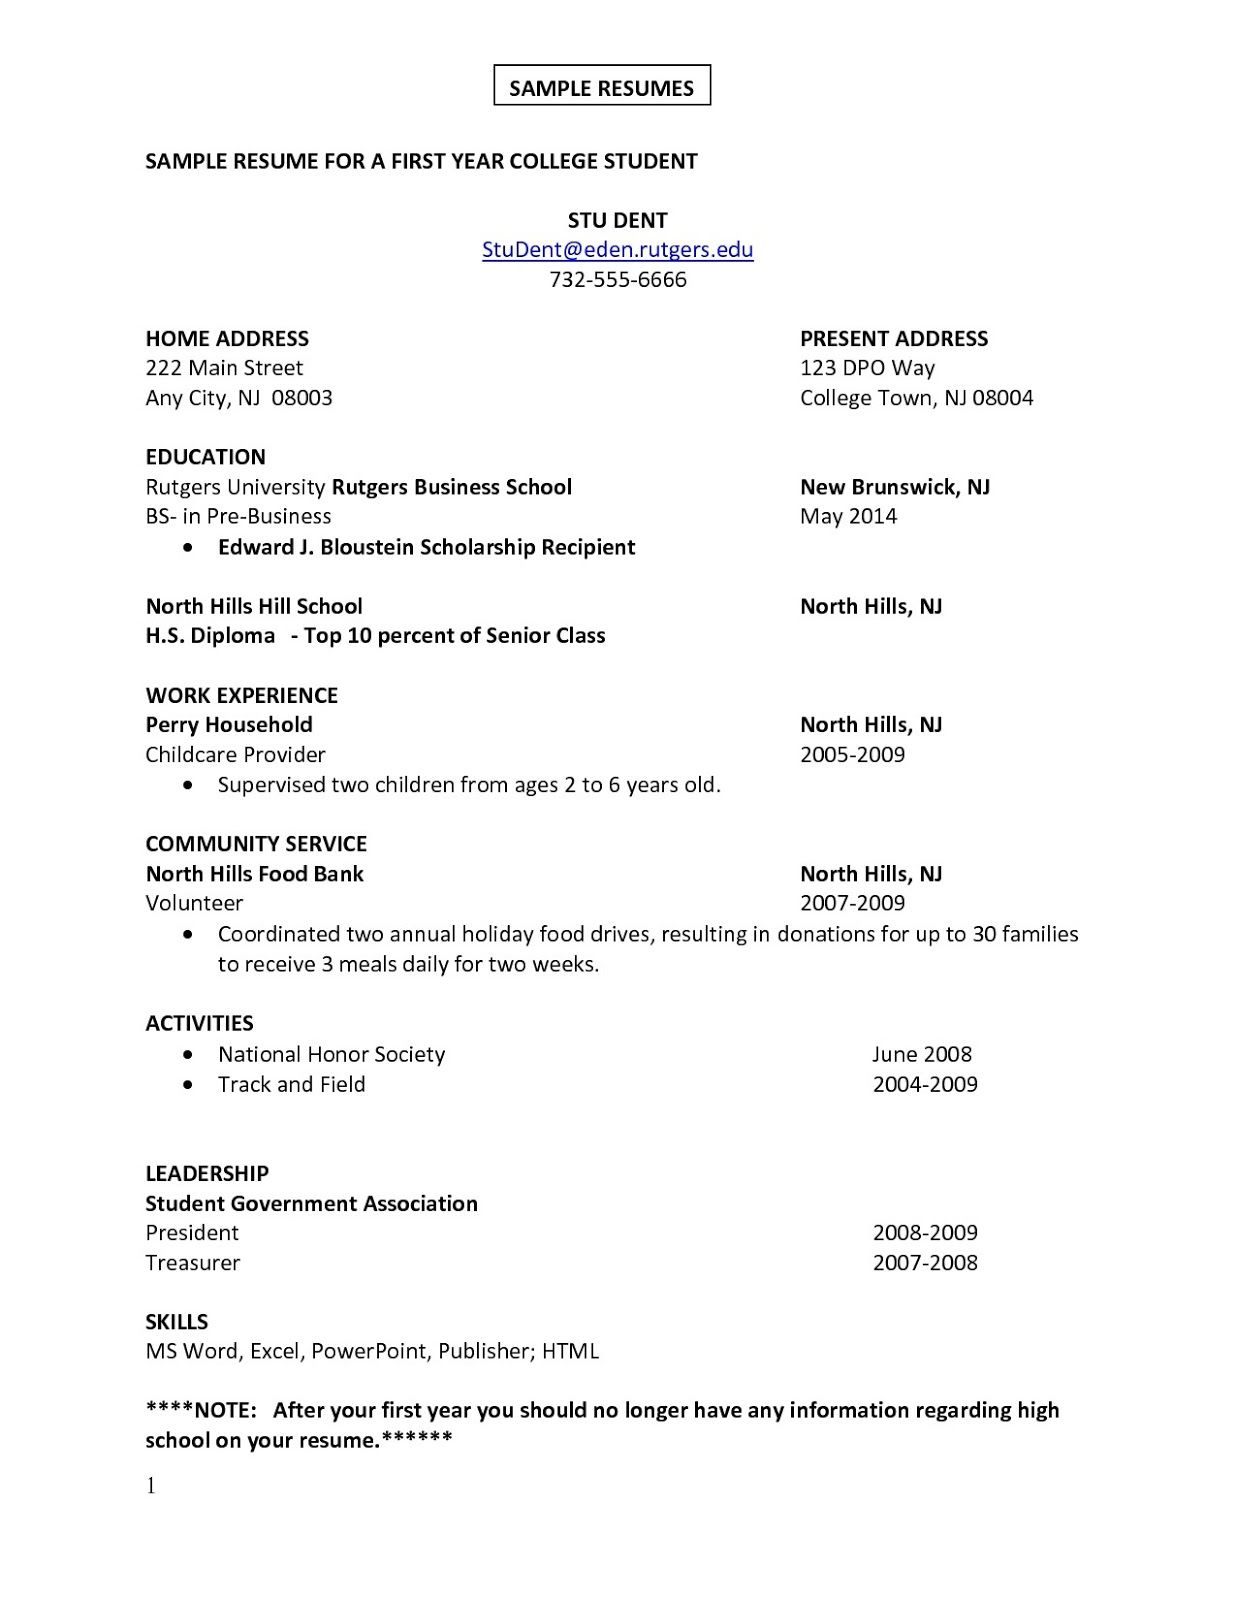 A Sample Resume For A First Job First Job Sample Resume Sample Resumes Sample Resumes